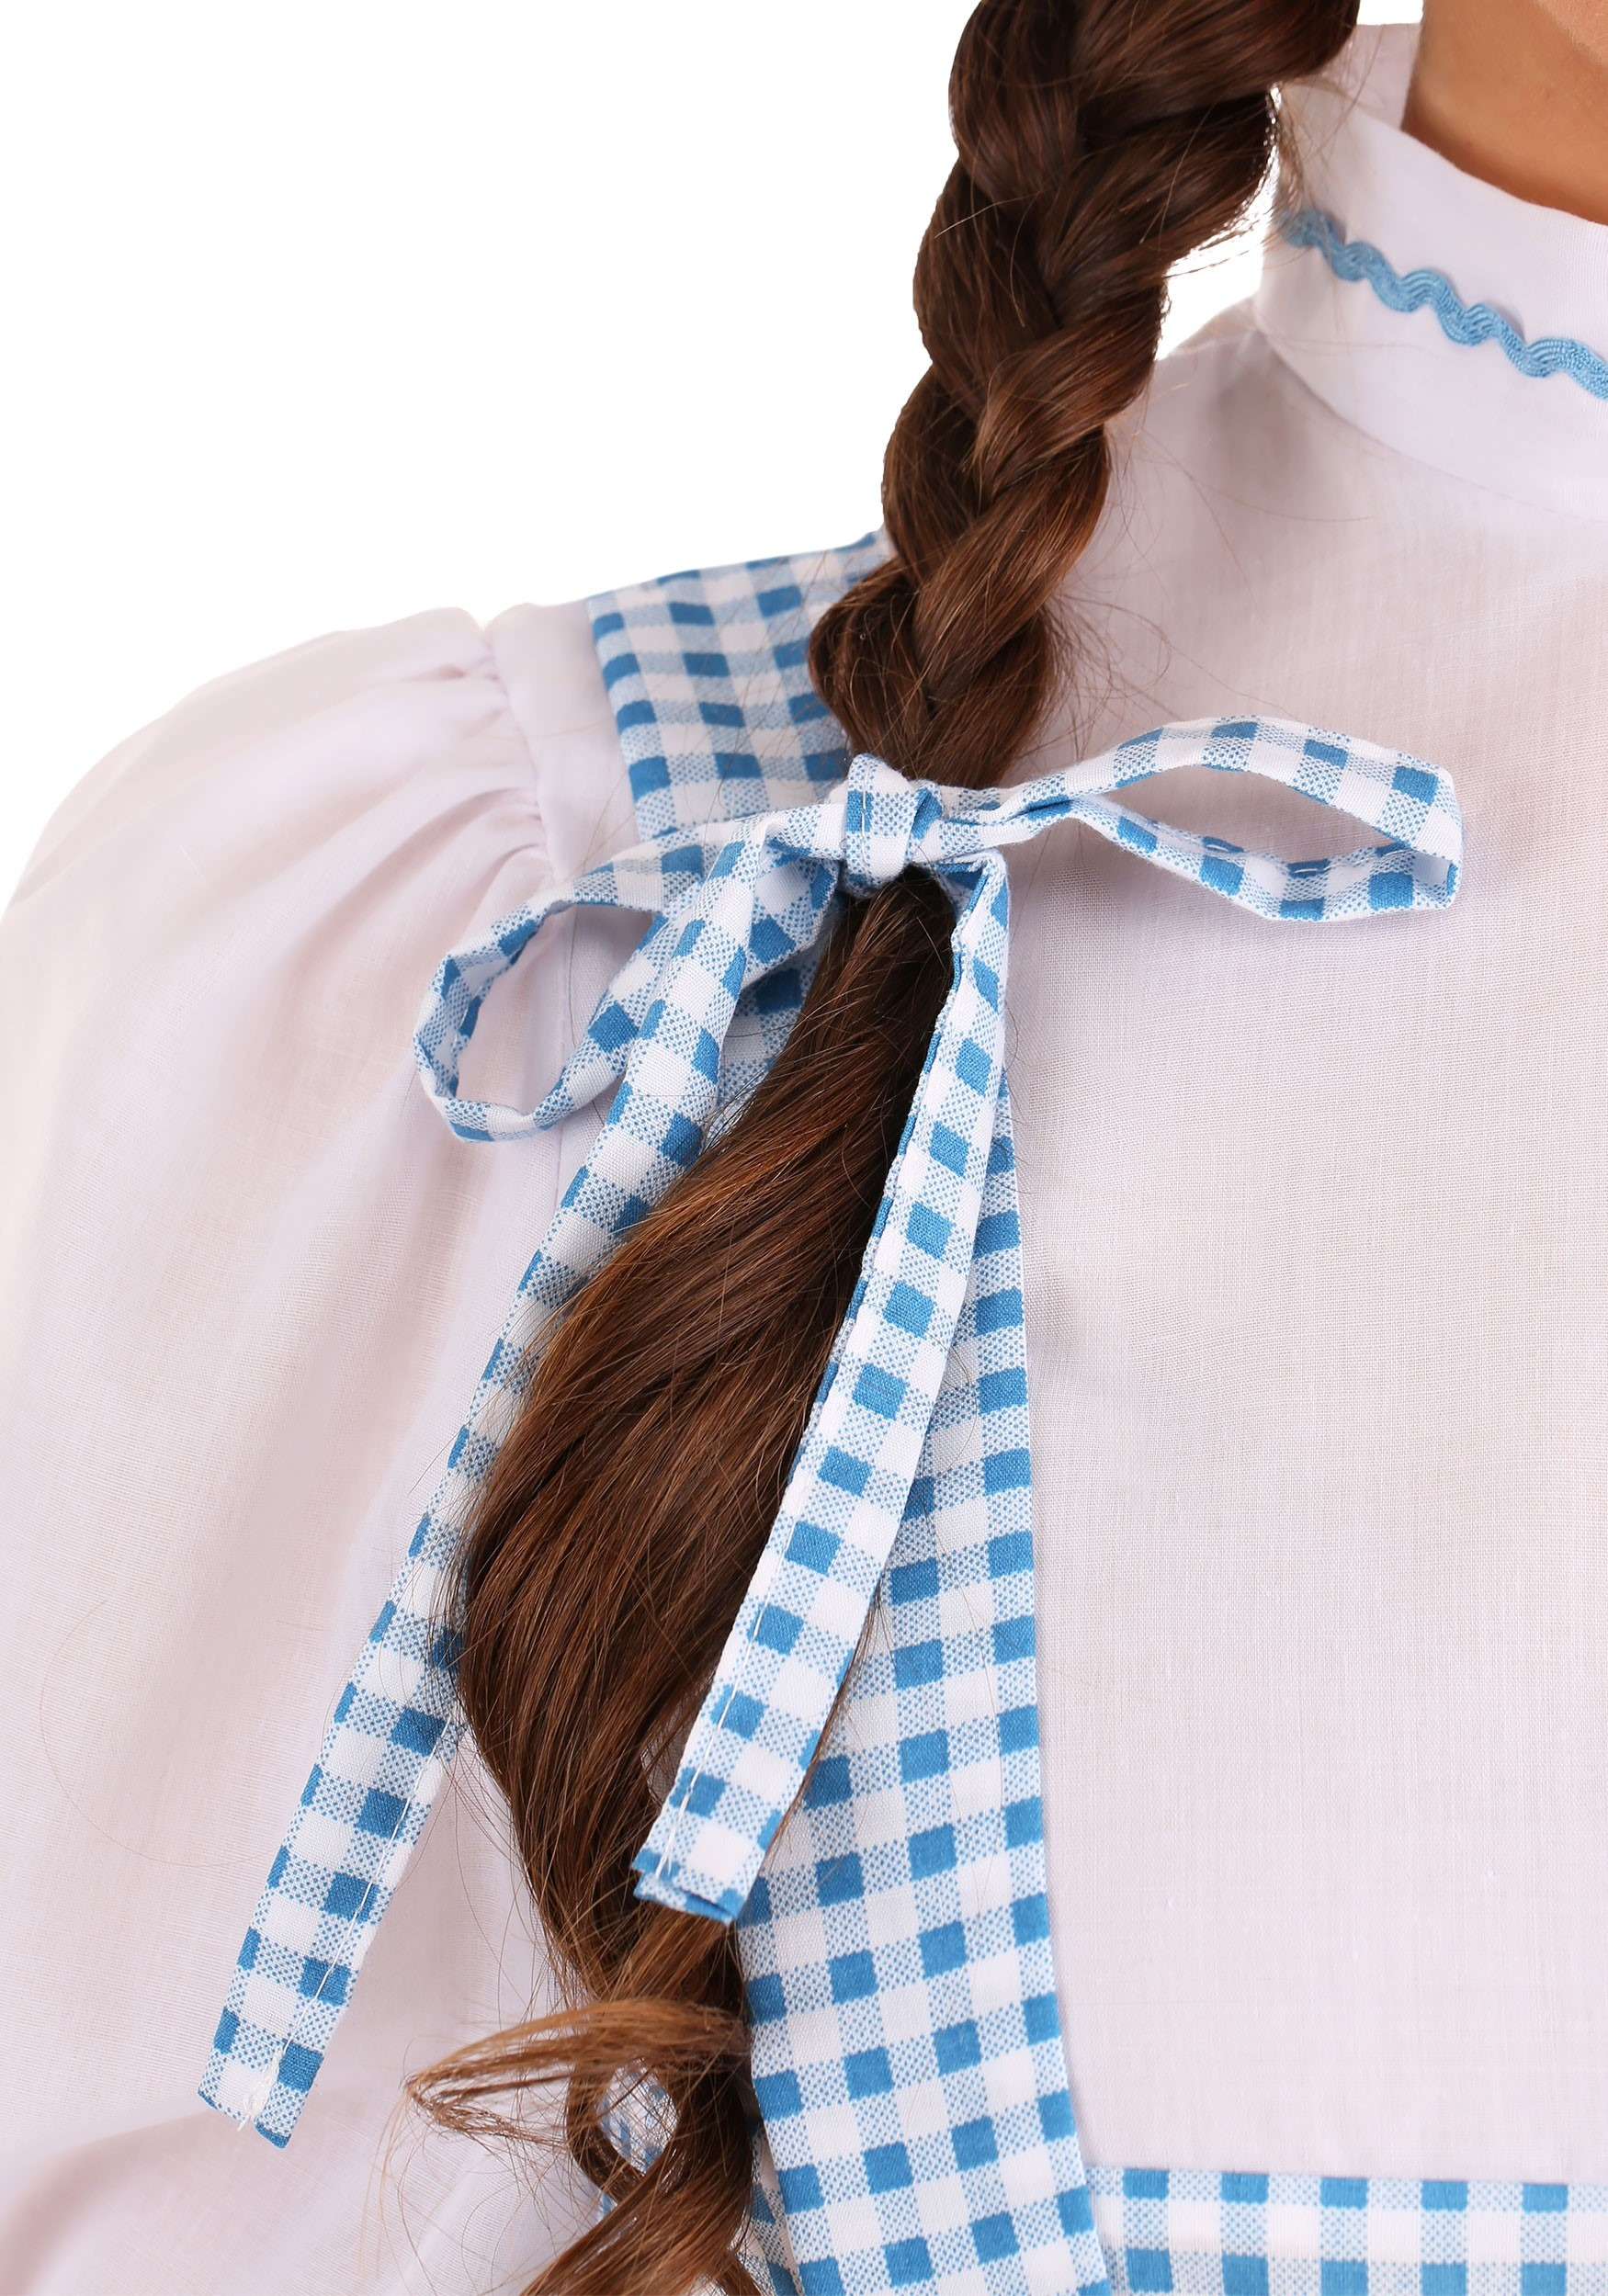 Adult Dorothy Dress Adult Dorothy Wizard Of Oz Costumes